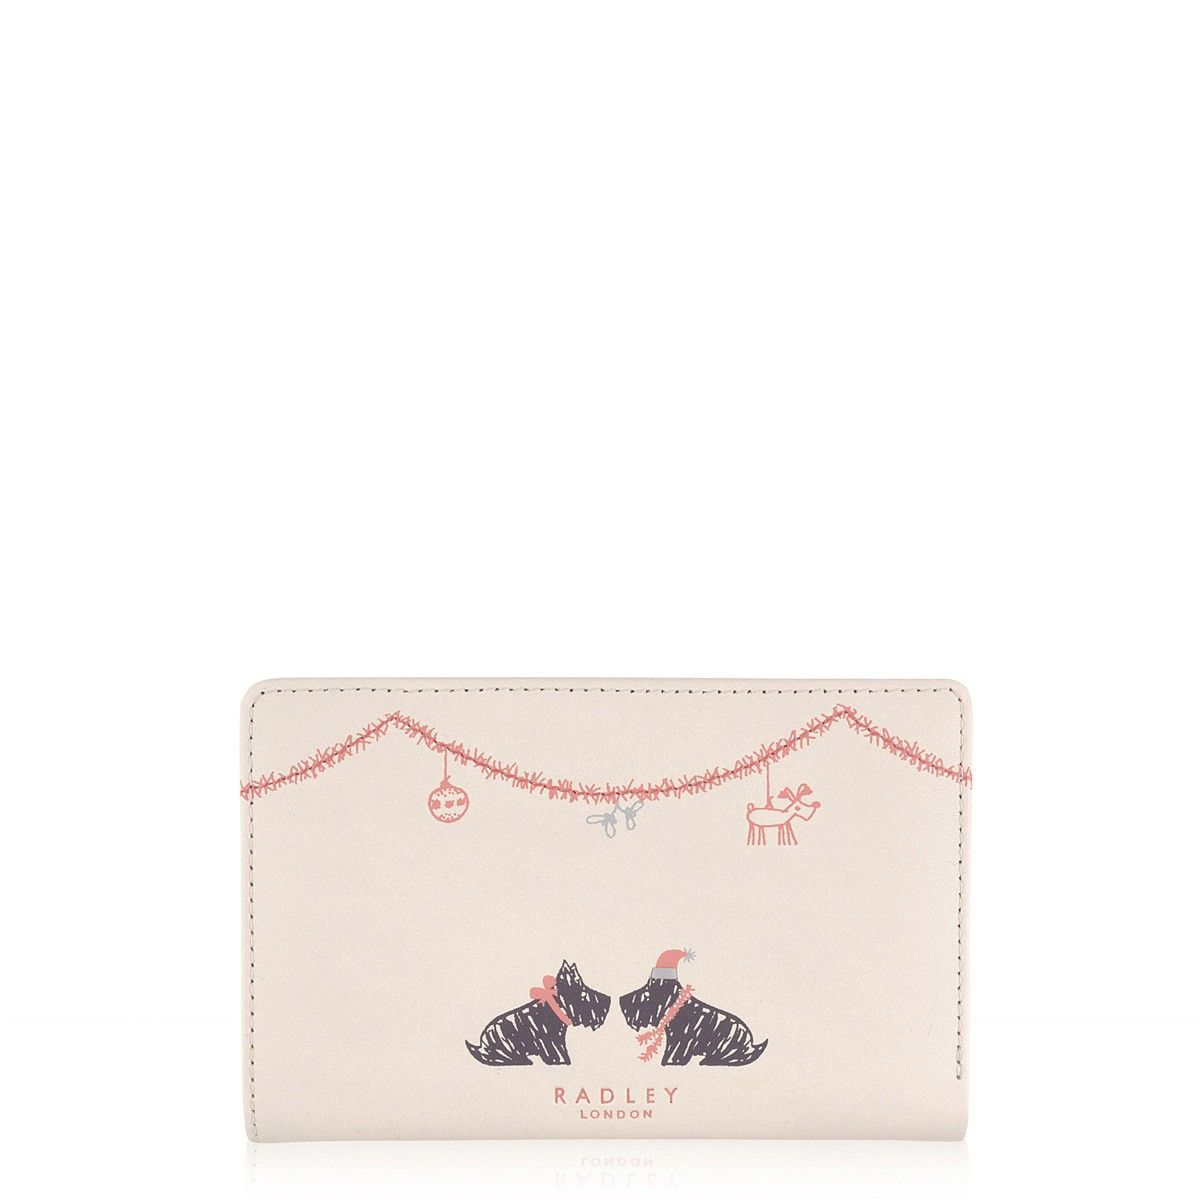 A Christmas Kiss\'- this leather Radley purse would make an ideal ...